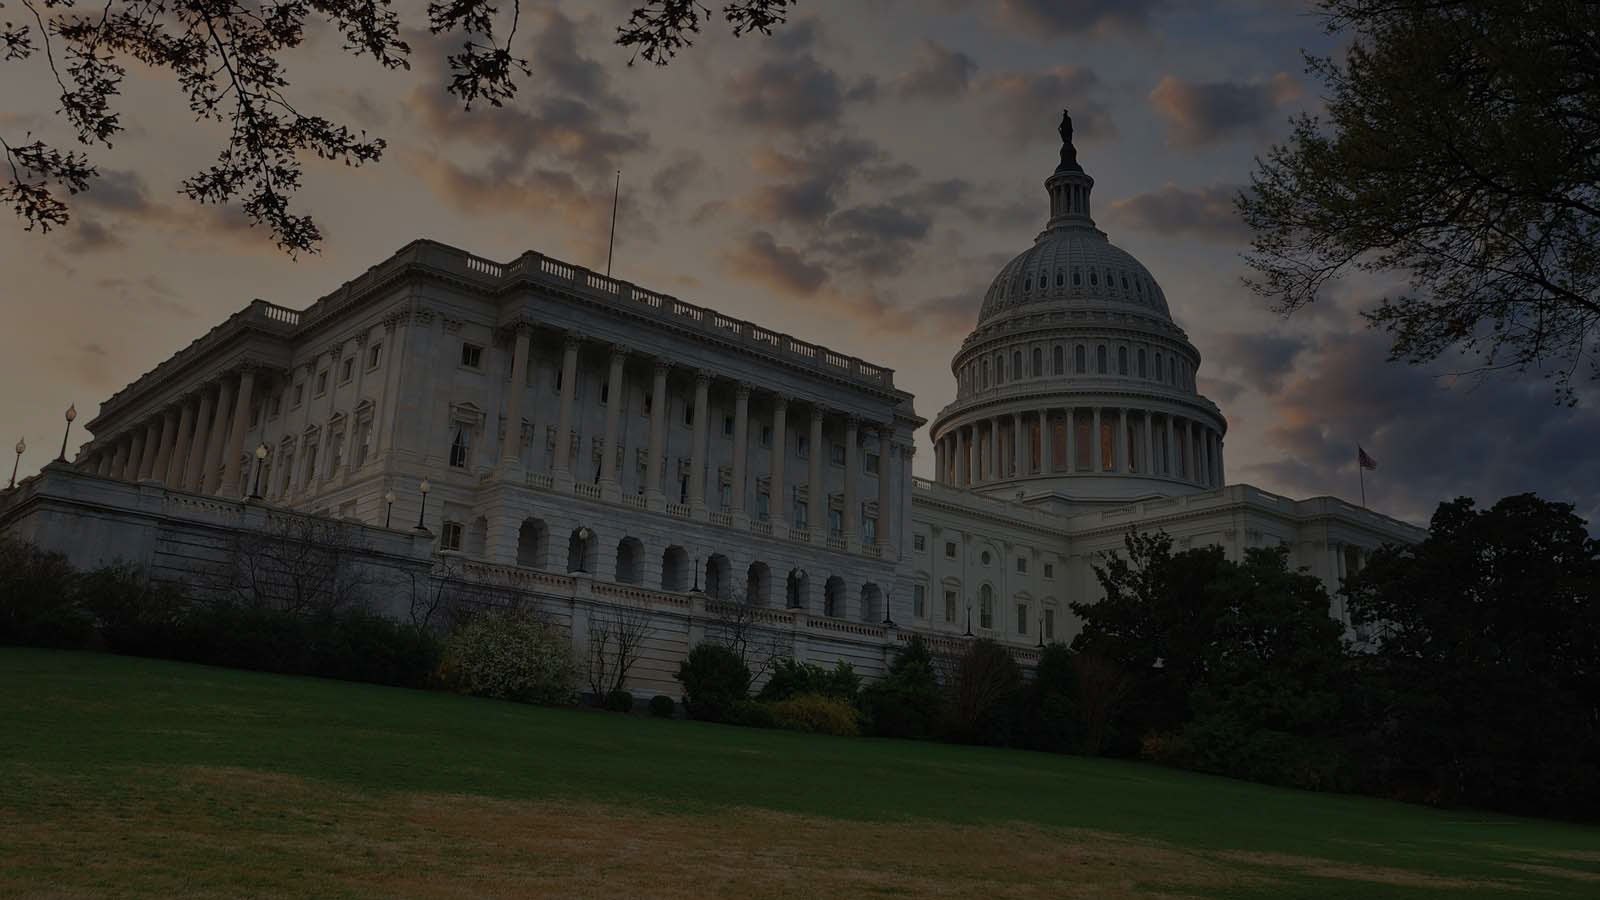 <h4>A DISCONNECT BETWEEN PEOPLE AND THEIR REPRESENTATIVES</h4><h5>Many of the elected officials who oppose climate action represent communities that are the most vulnerable to climate change.</h5><em>Songquan Deng via Shutterstock</em>